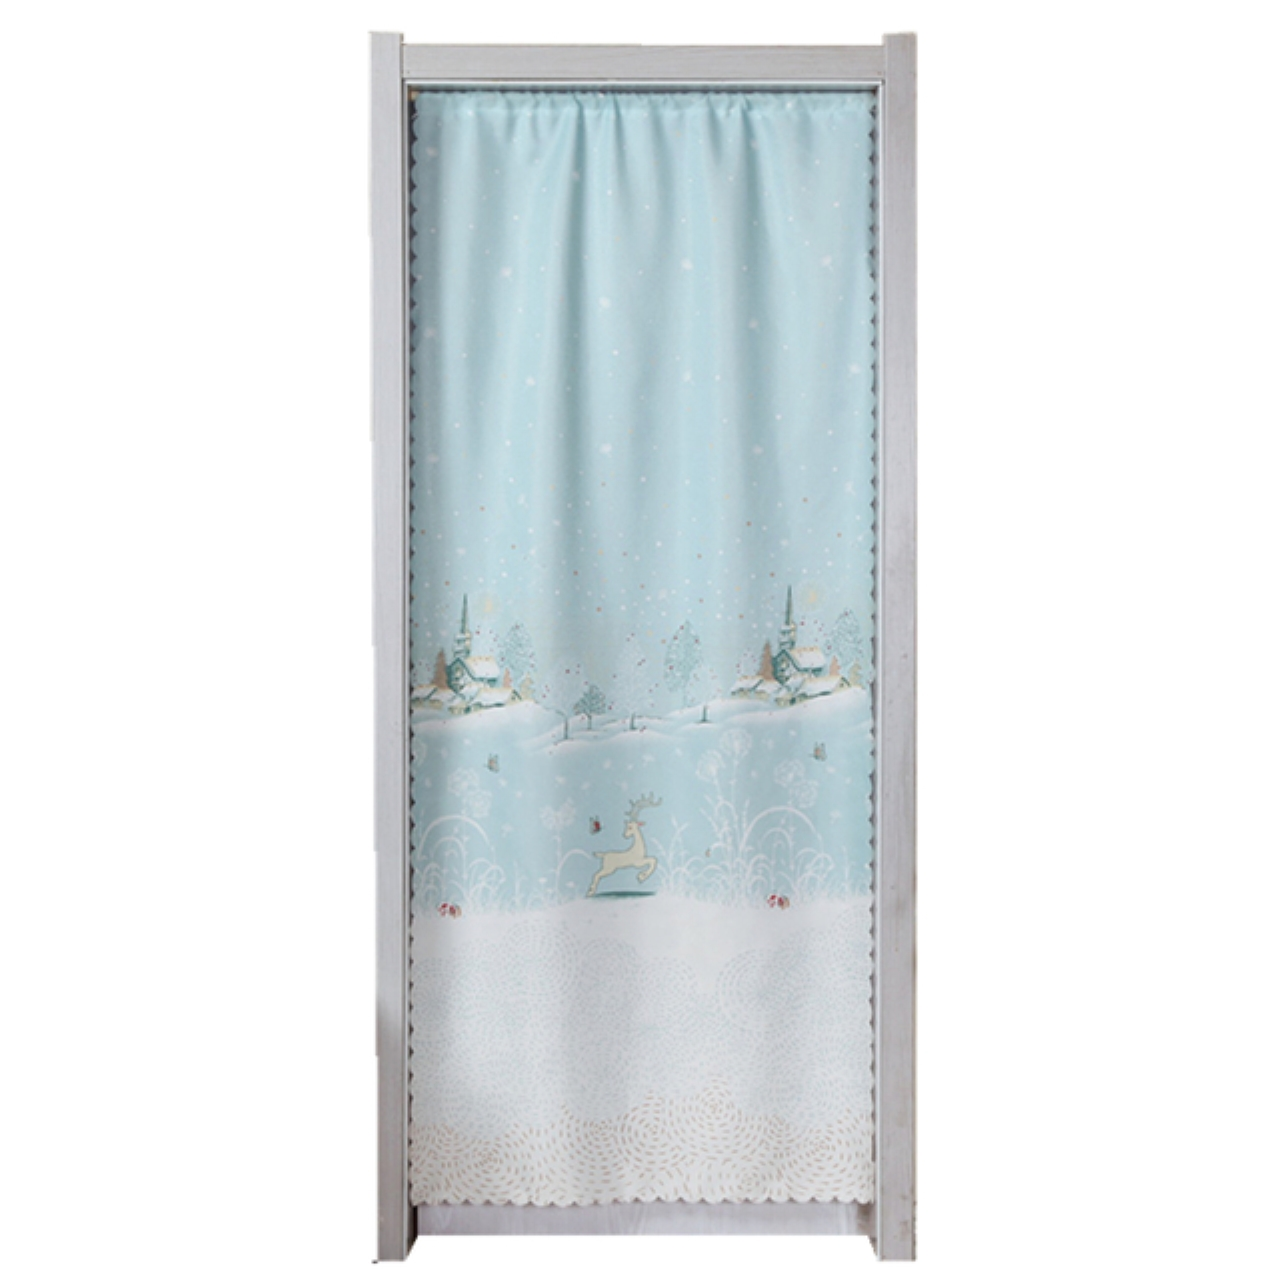 Curtain curtain curtain Feng Shui bedroom living room kitchen curtain cloth curtain half Japanese single curtain curtain partition changmen